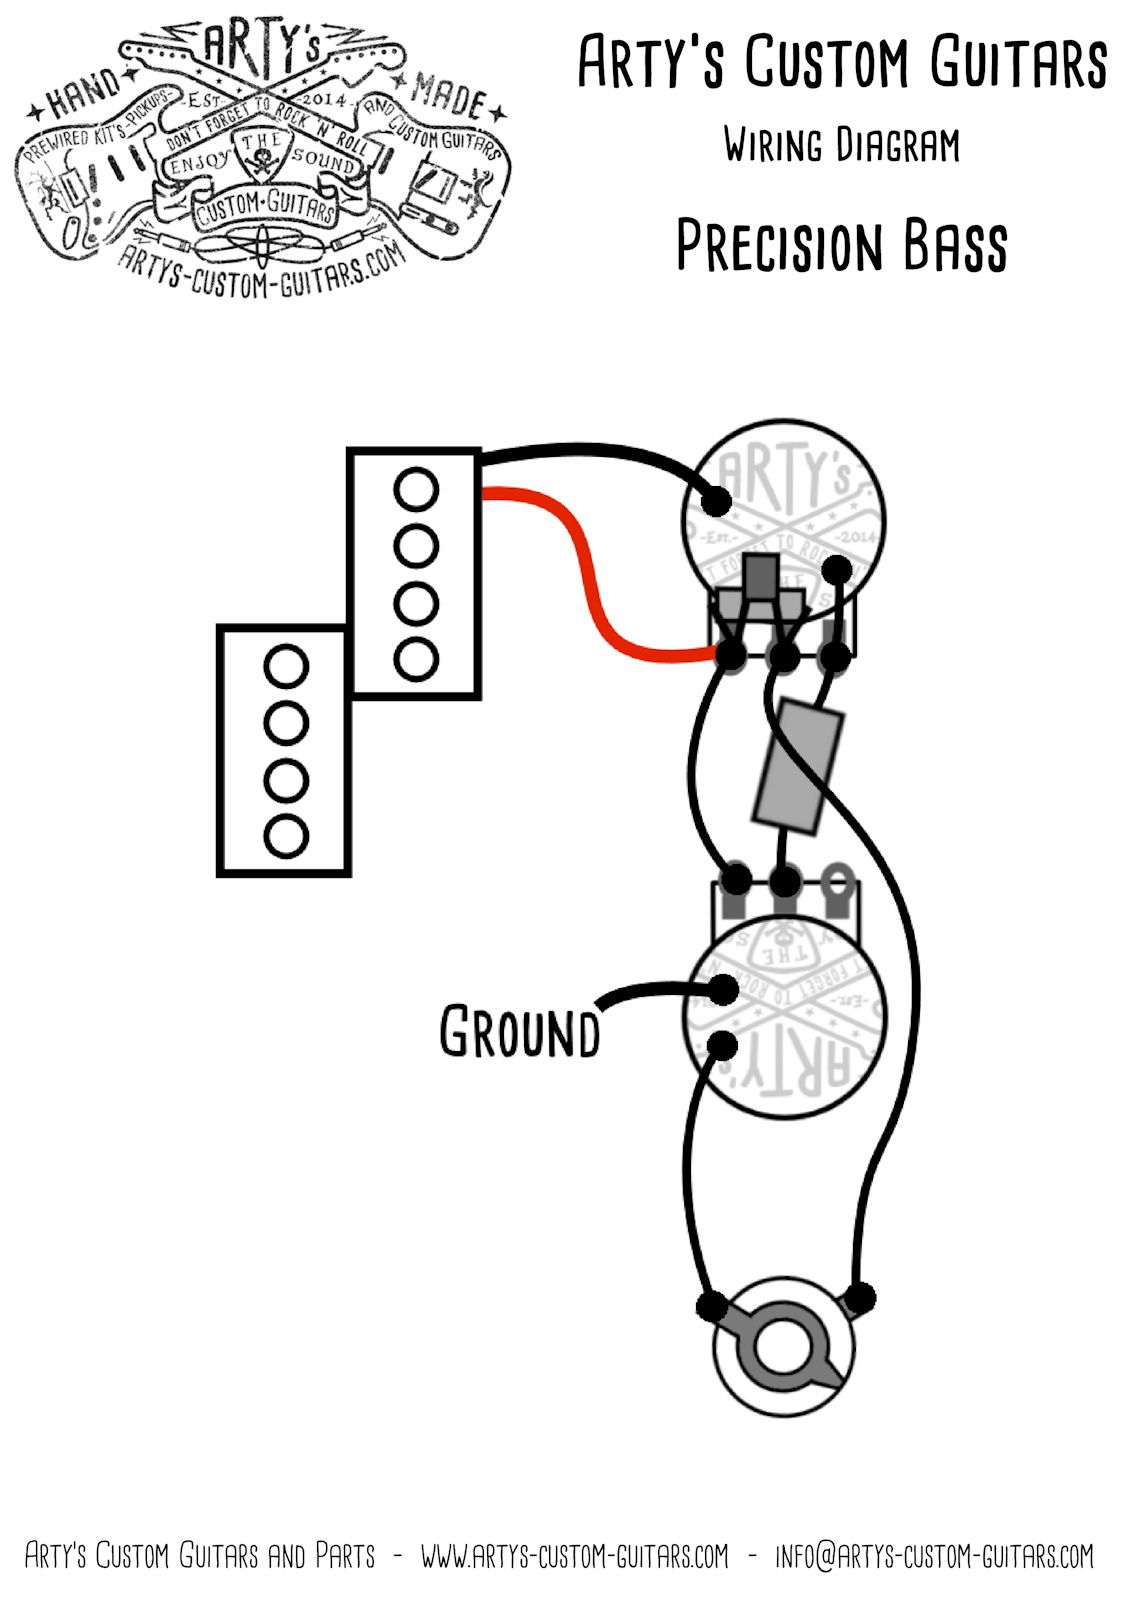 arty s custom guitars vintage wiring prewired kit wiring diagram assembly harness artys precision bass p  [ 1132 x 1600 Pixel ]